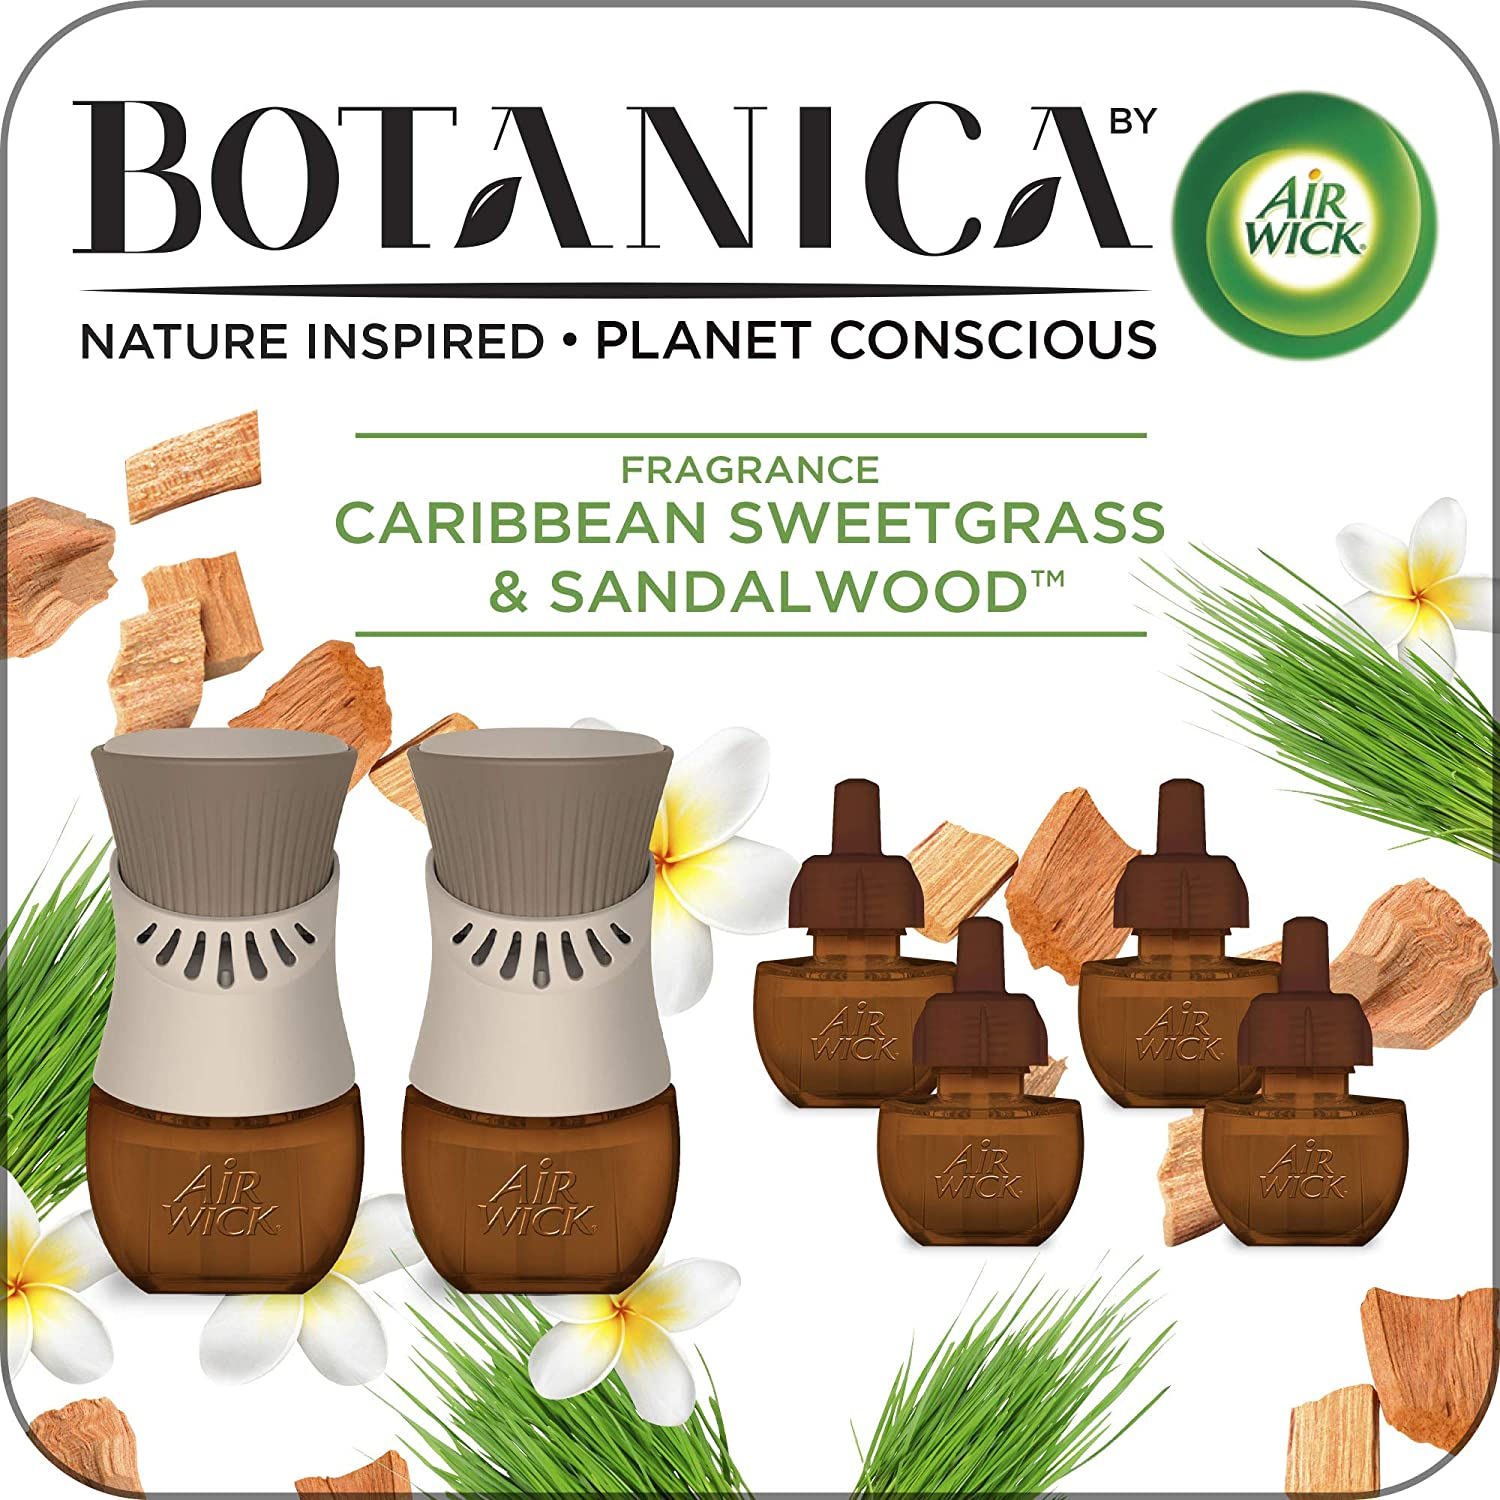 AIR WICK® Botanica Scented Oils - Caribbean Sweetgrass & Sandalwood - Kit